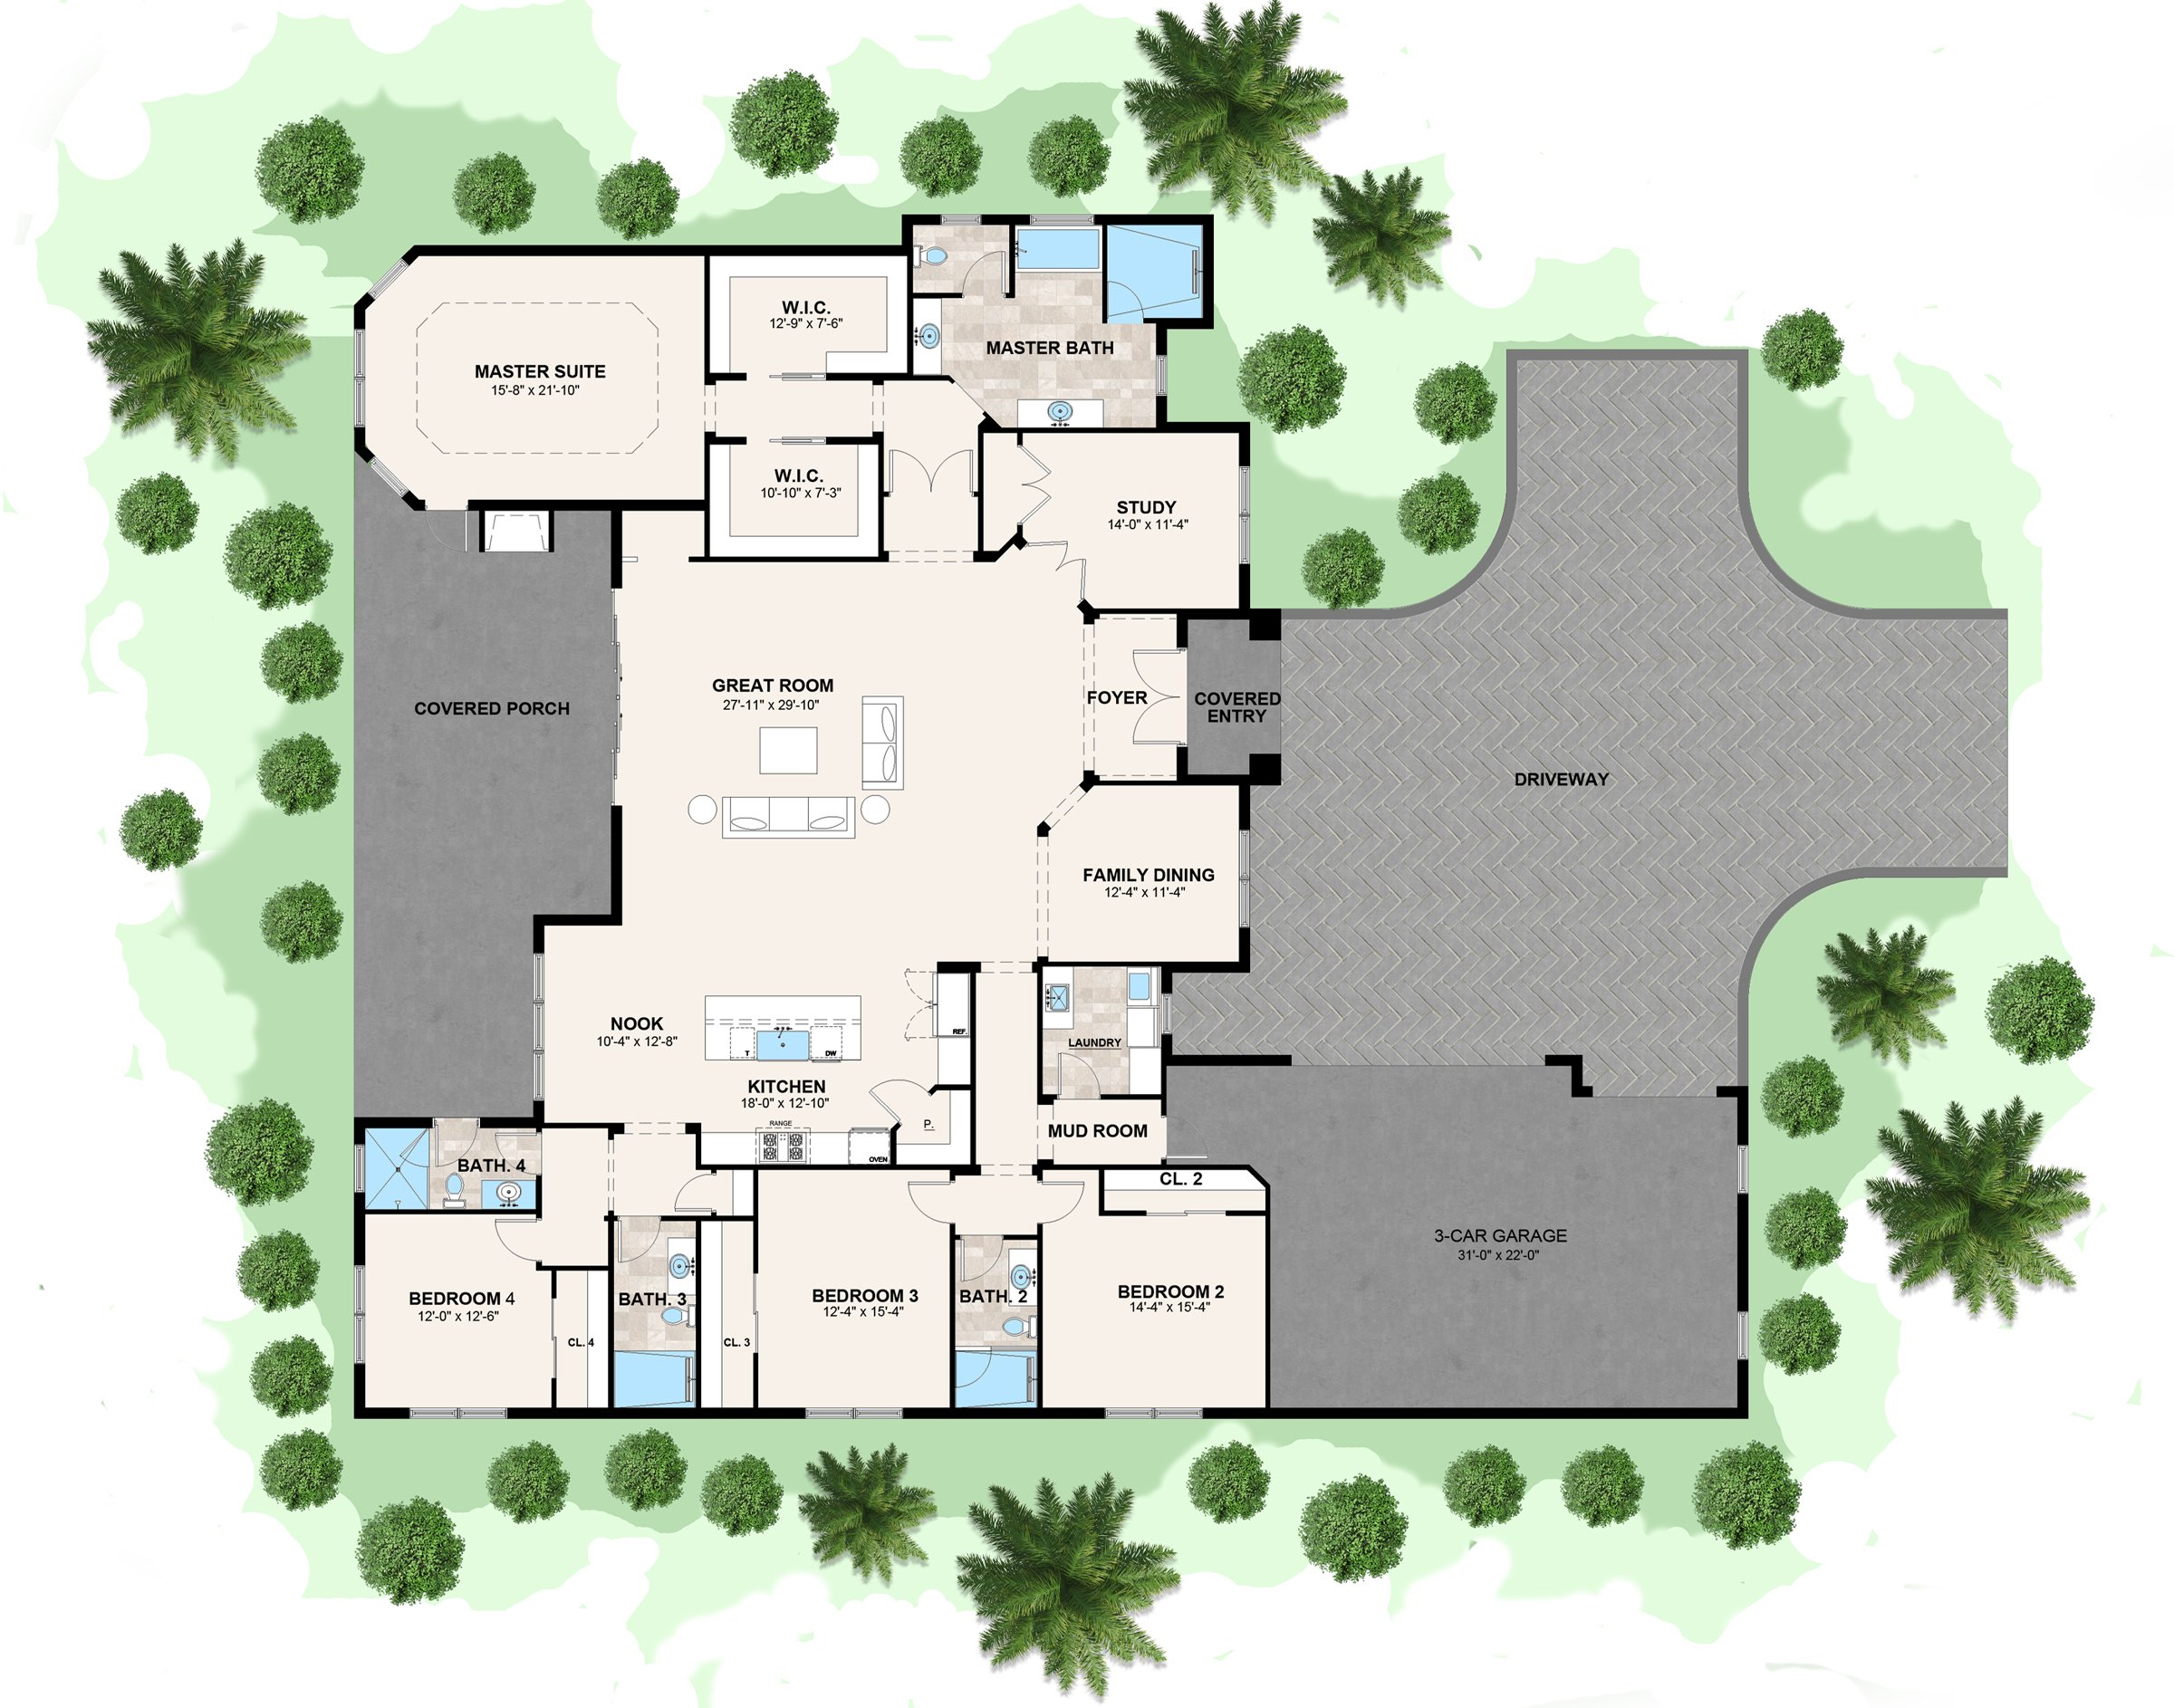 Floorplan of an Ayers Home Central Florida